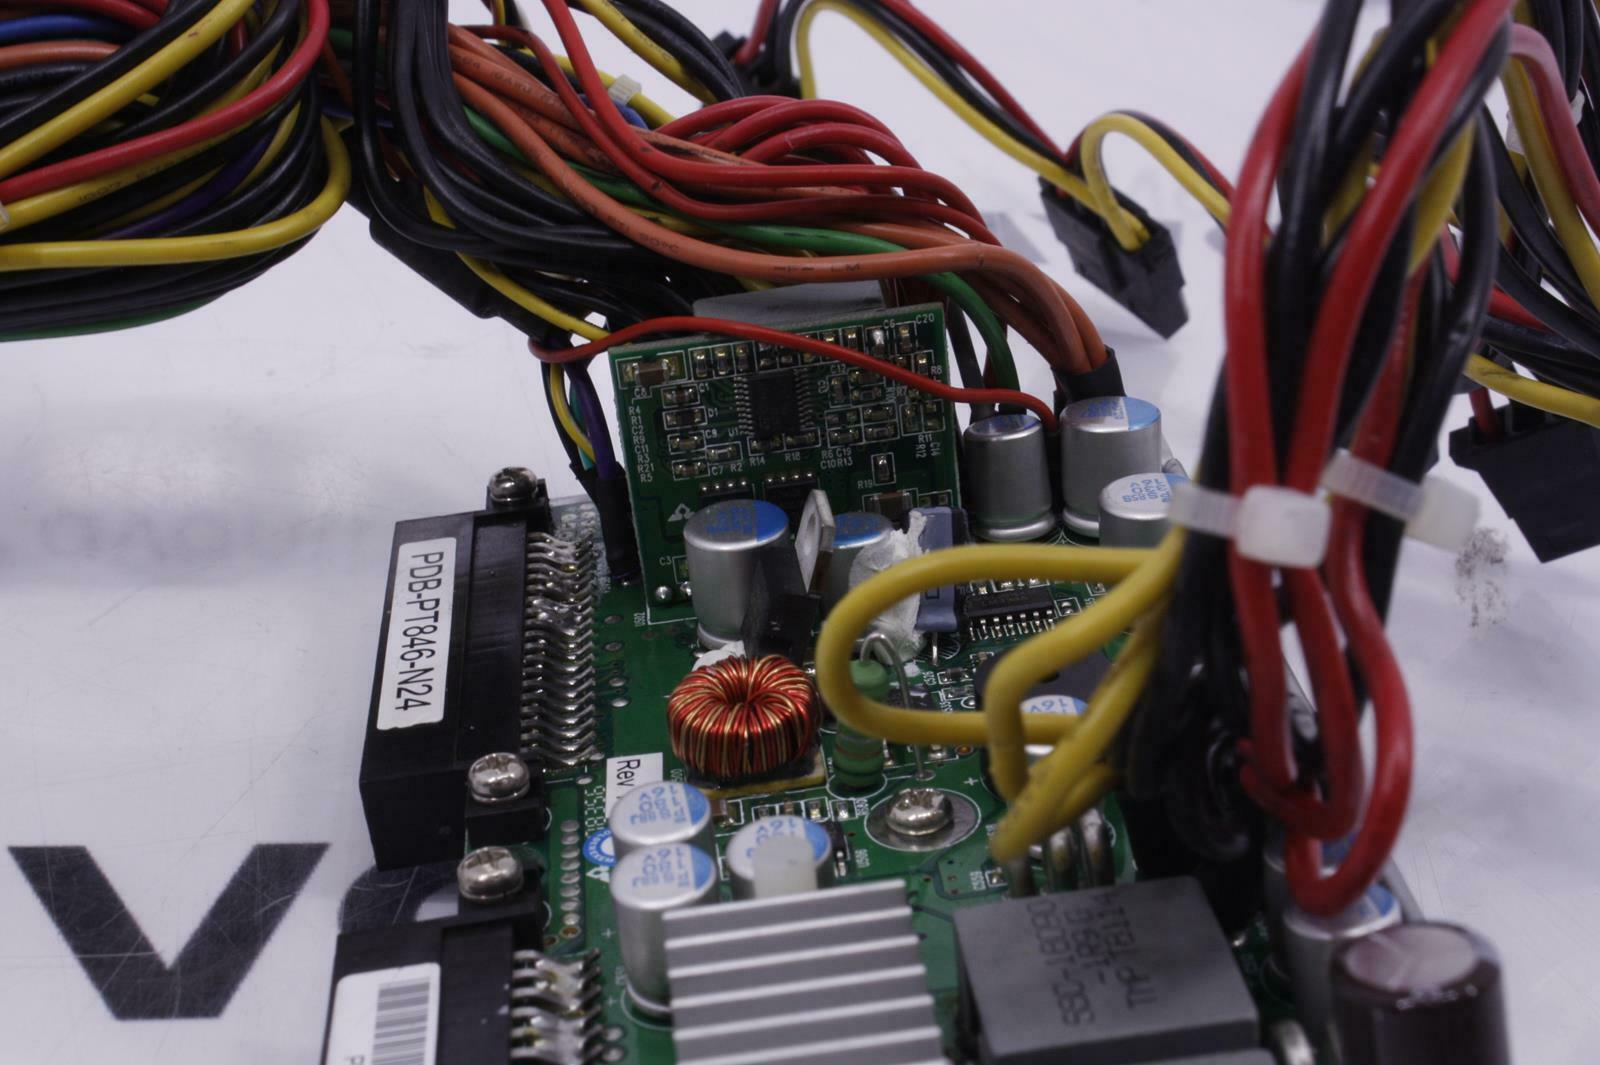 PDB-PT827-S2488 SuperMicro 24-pin Power Distributor for Case SC827